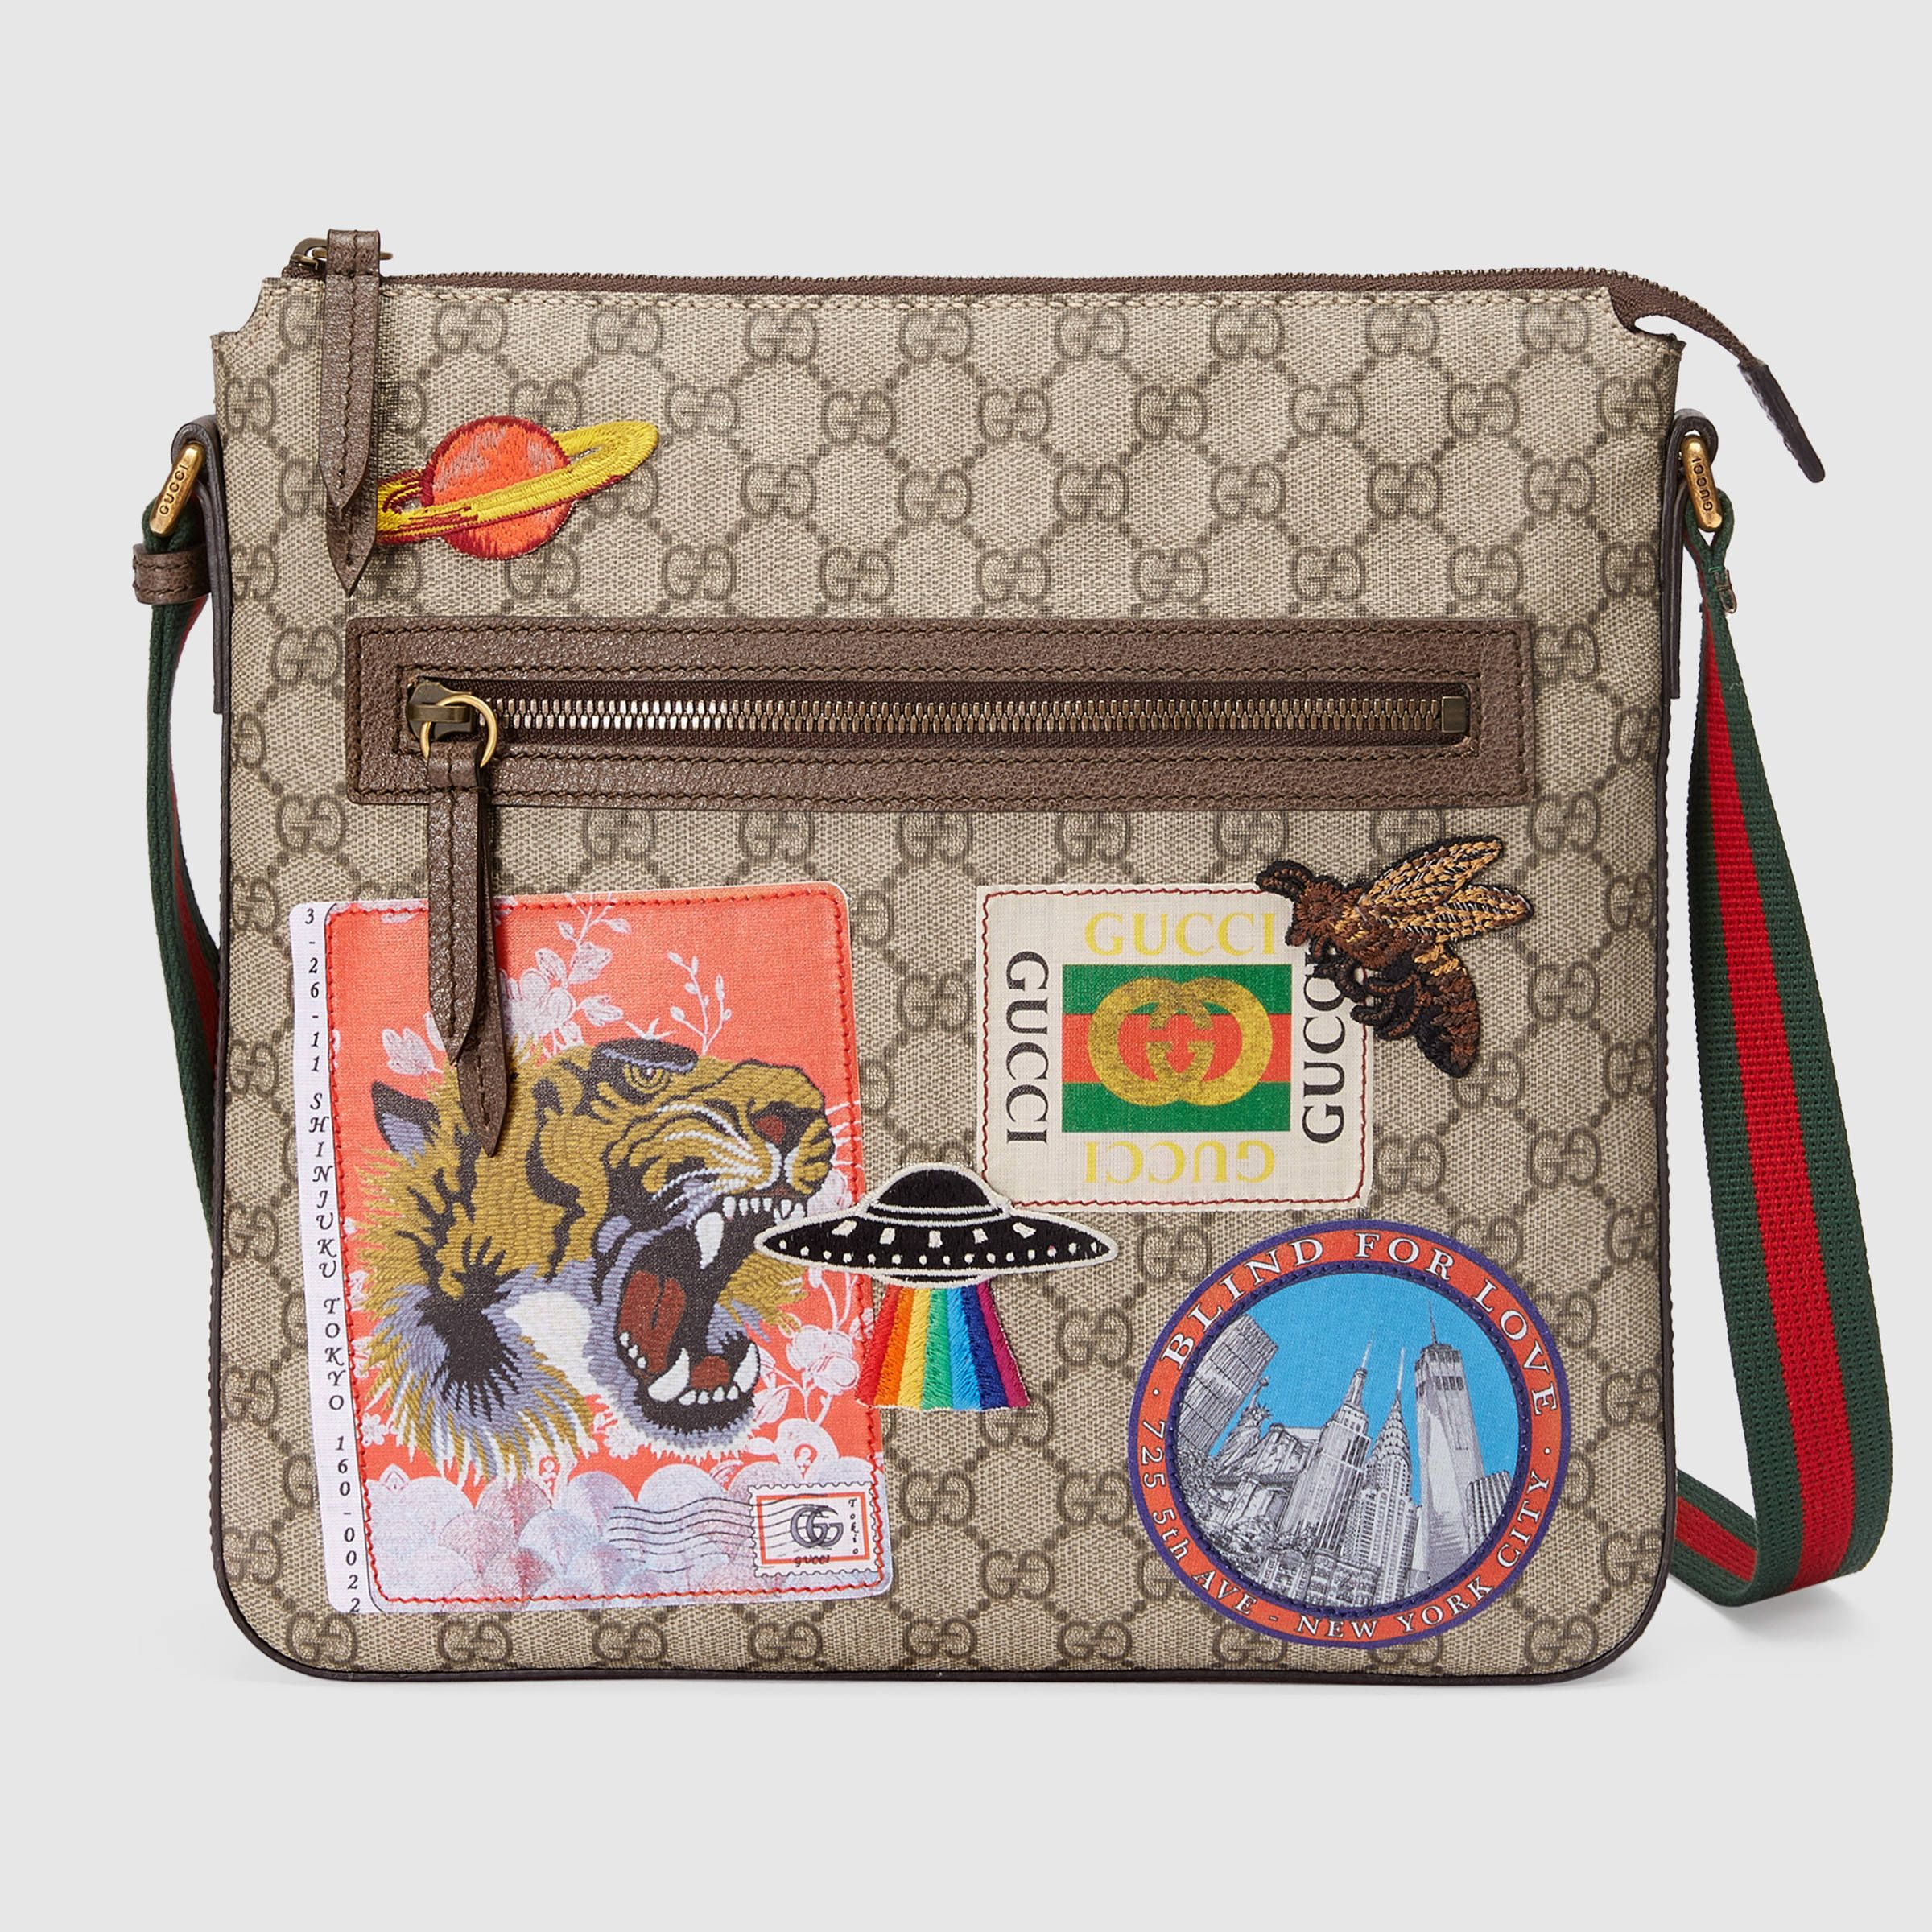 266c60383 Gucci Courrier soft GG Supreme messenger in 2019 | My Style | Gucci ...